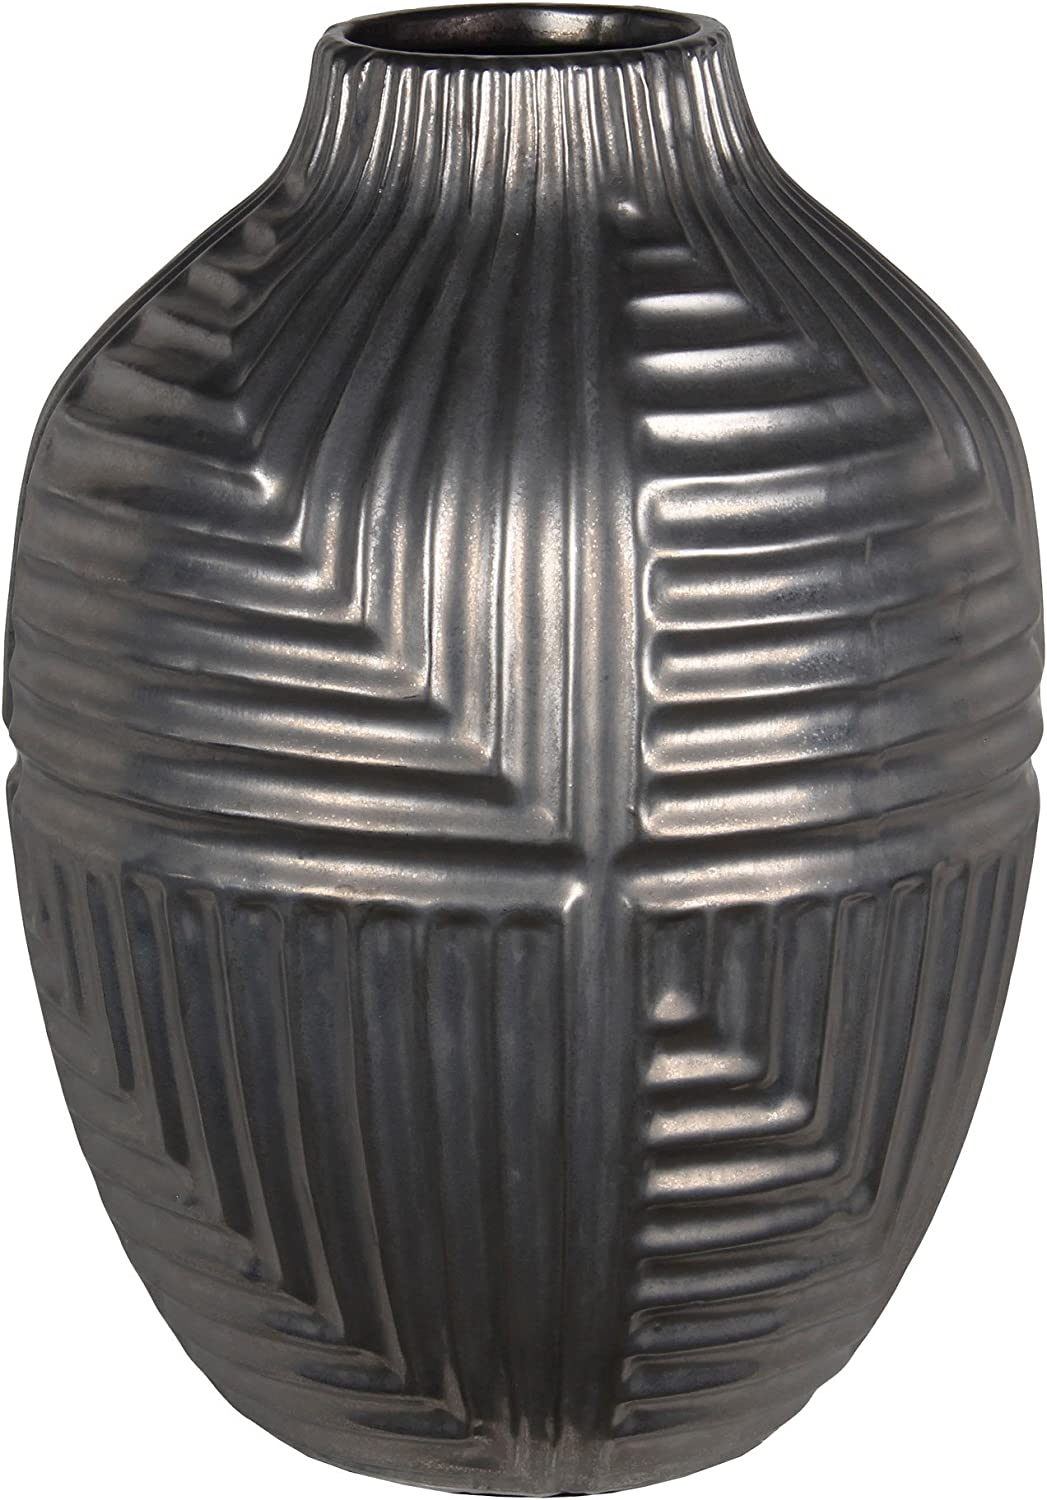 Privilege 20192 Large Ceramic Vase, Silver